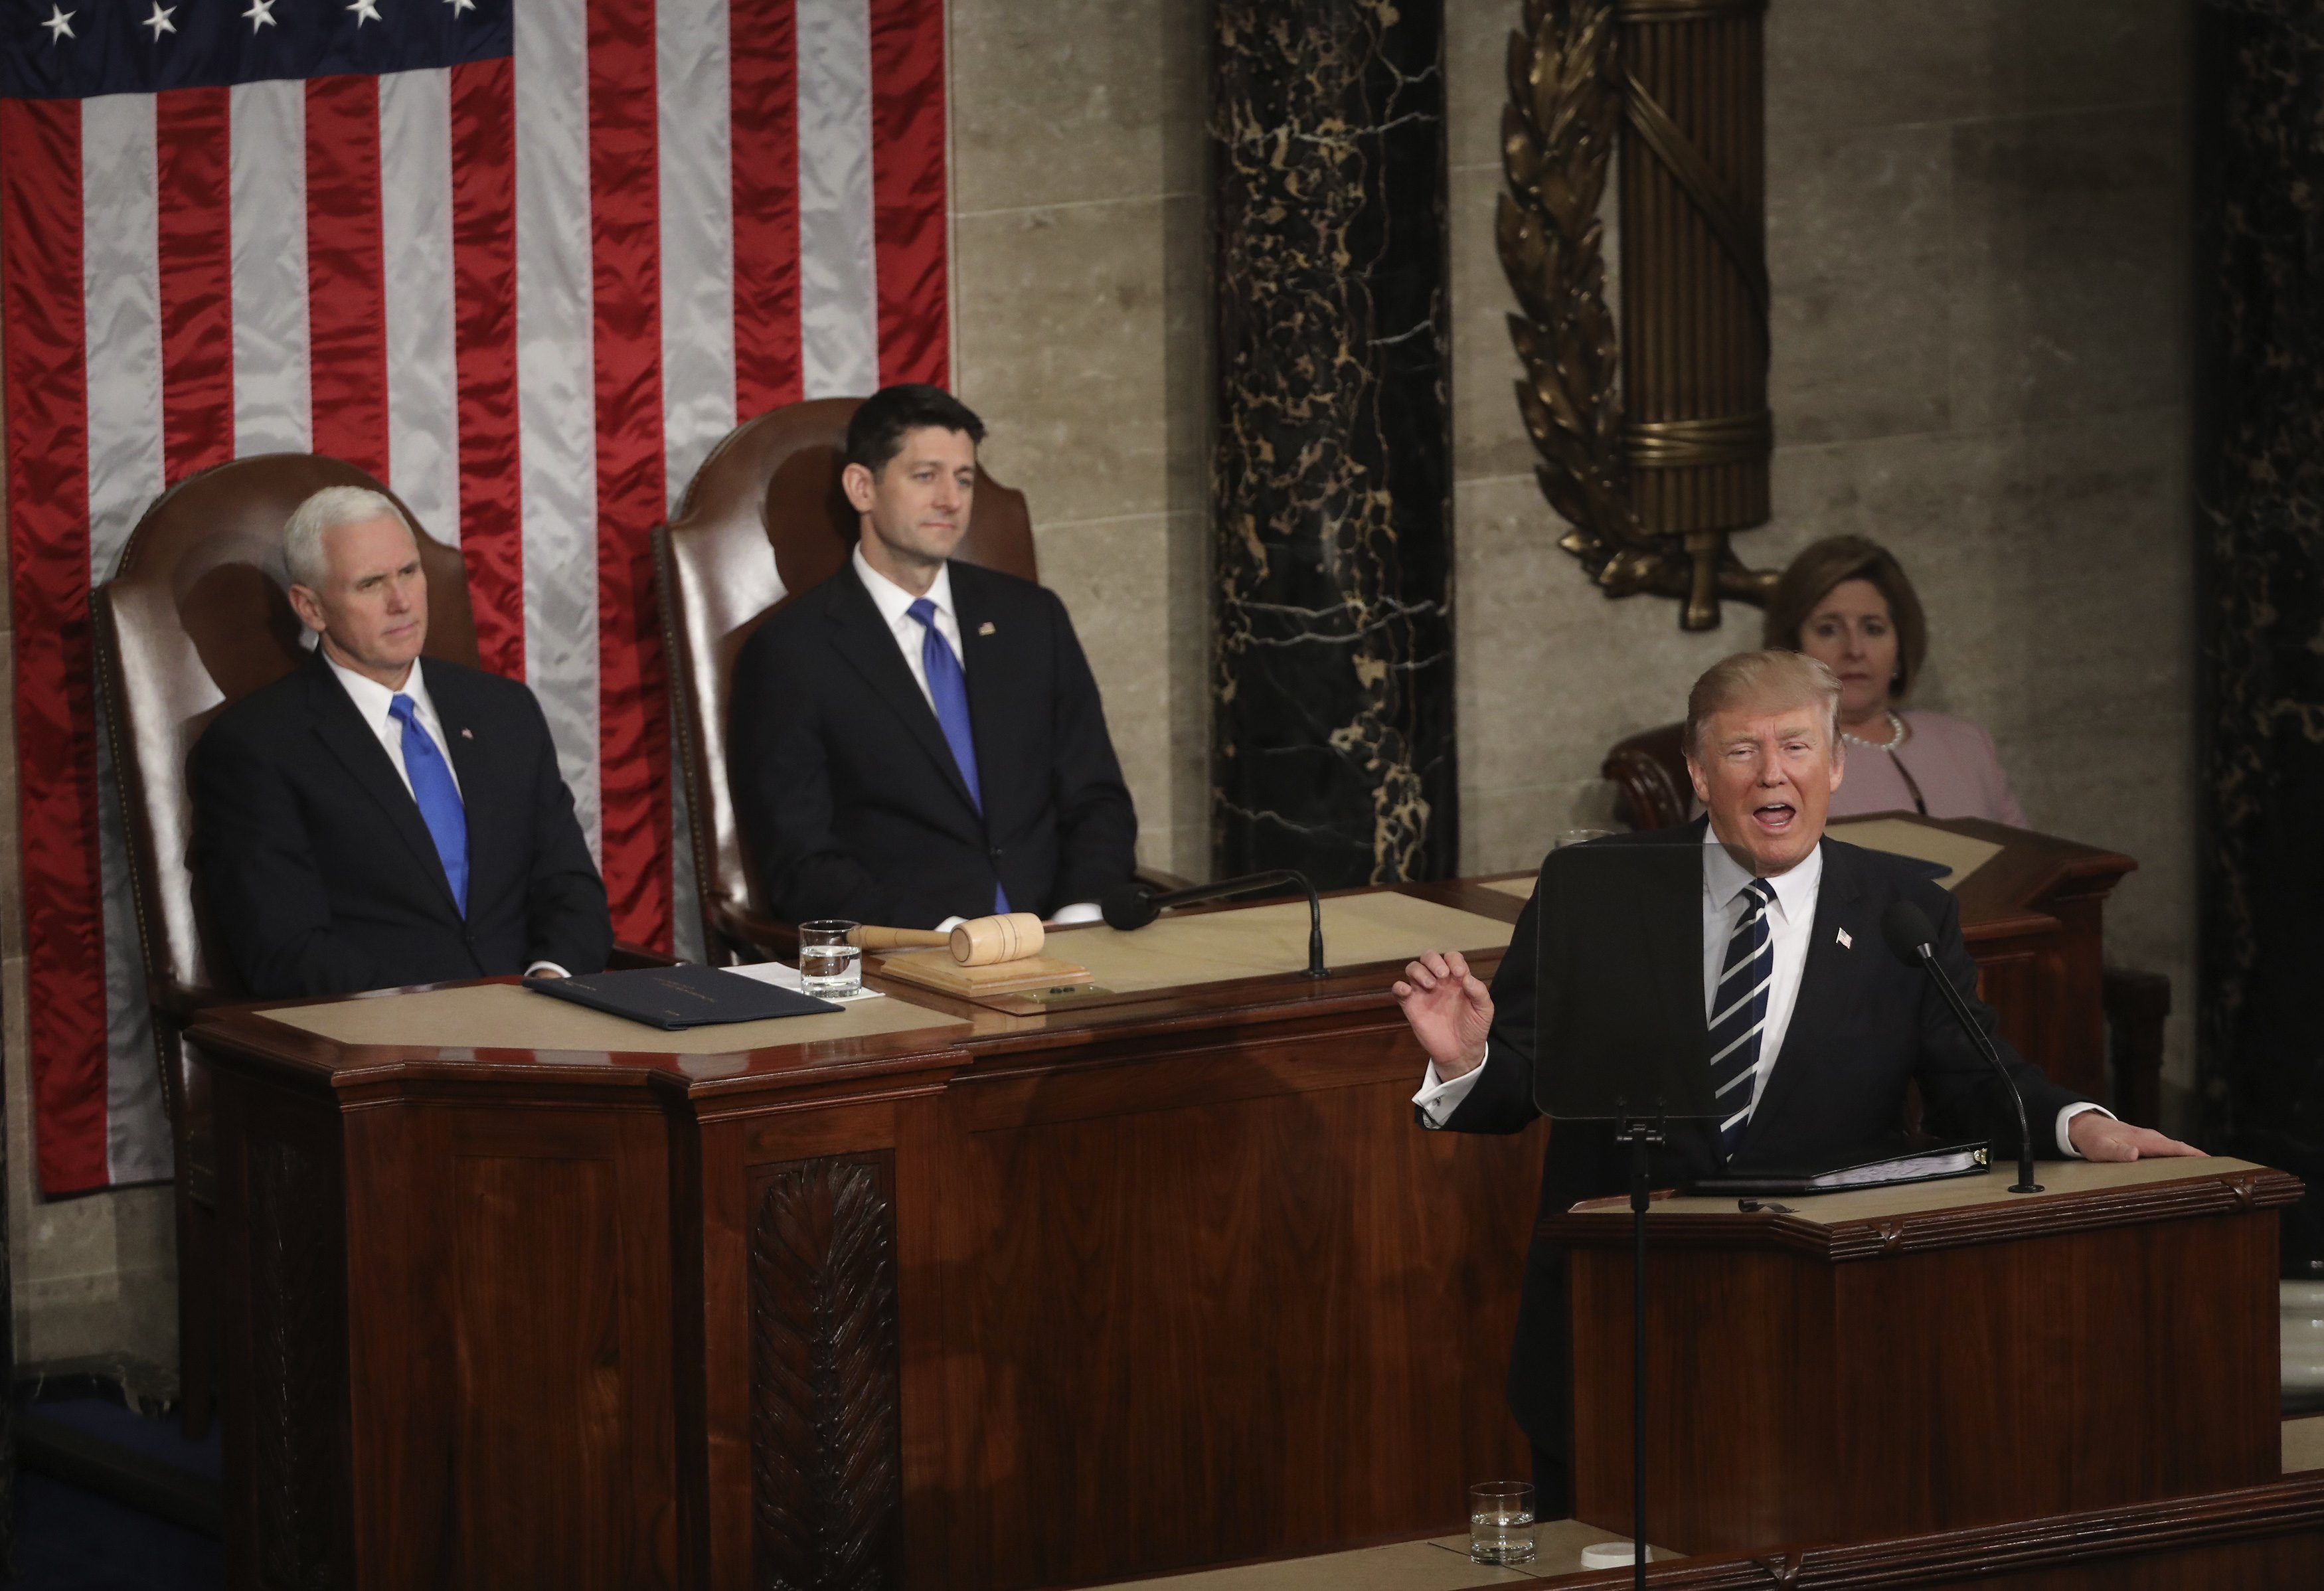 President Trump addresses Joint Session of Congress. REUTERS/Carlos Barria